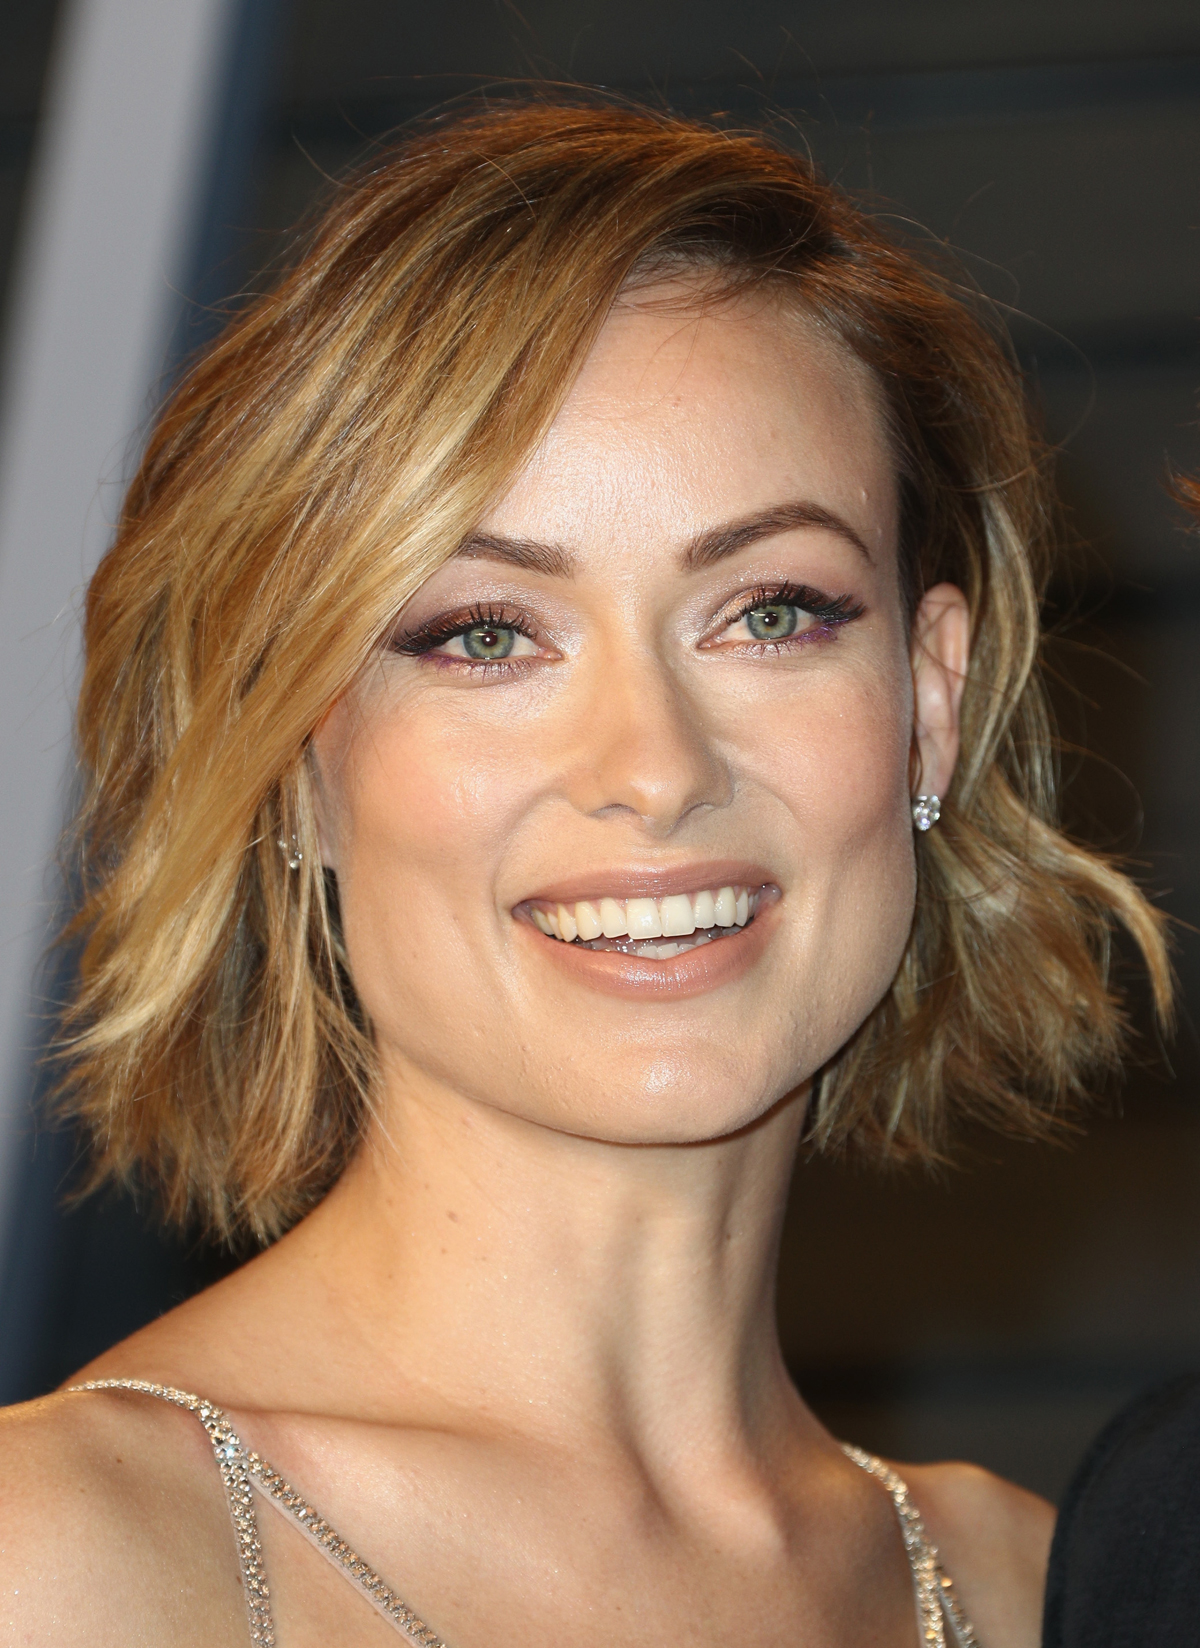 The Coolest Way to Wear Your Bob This Spring